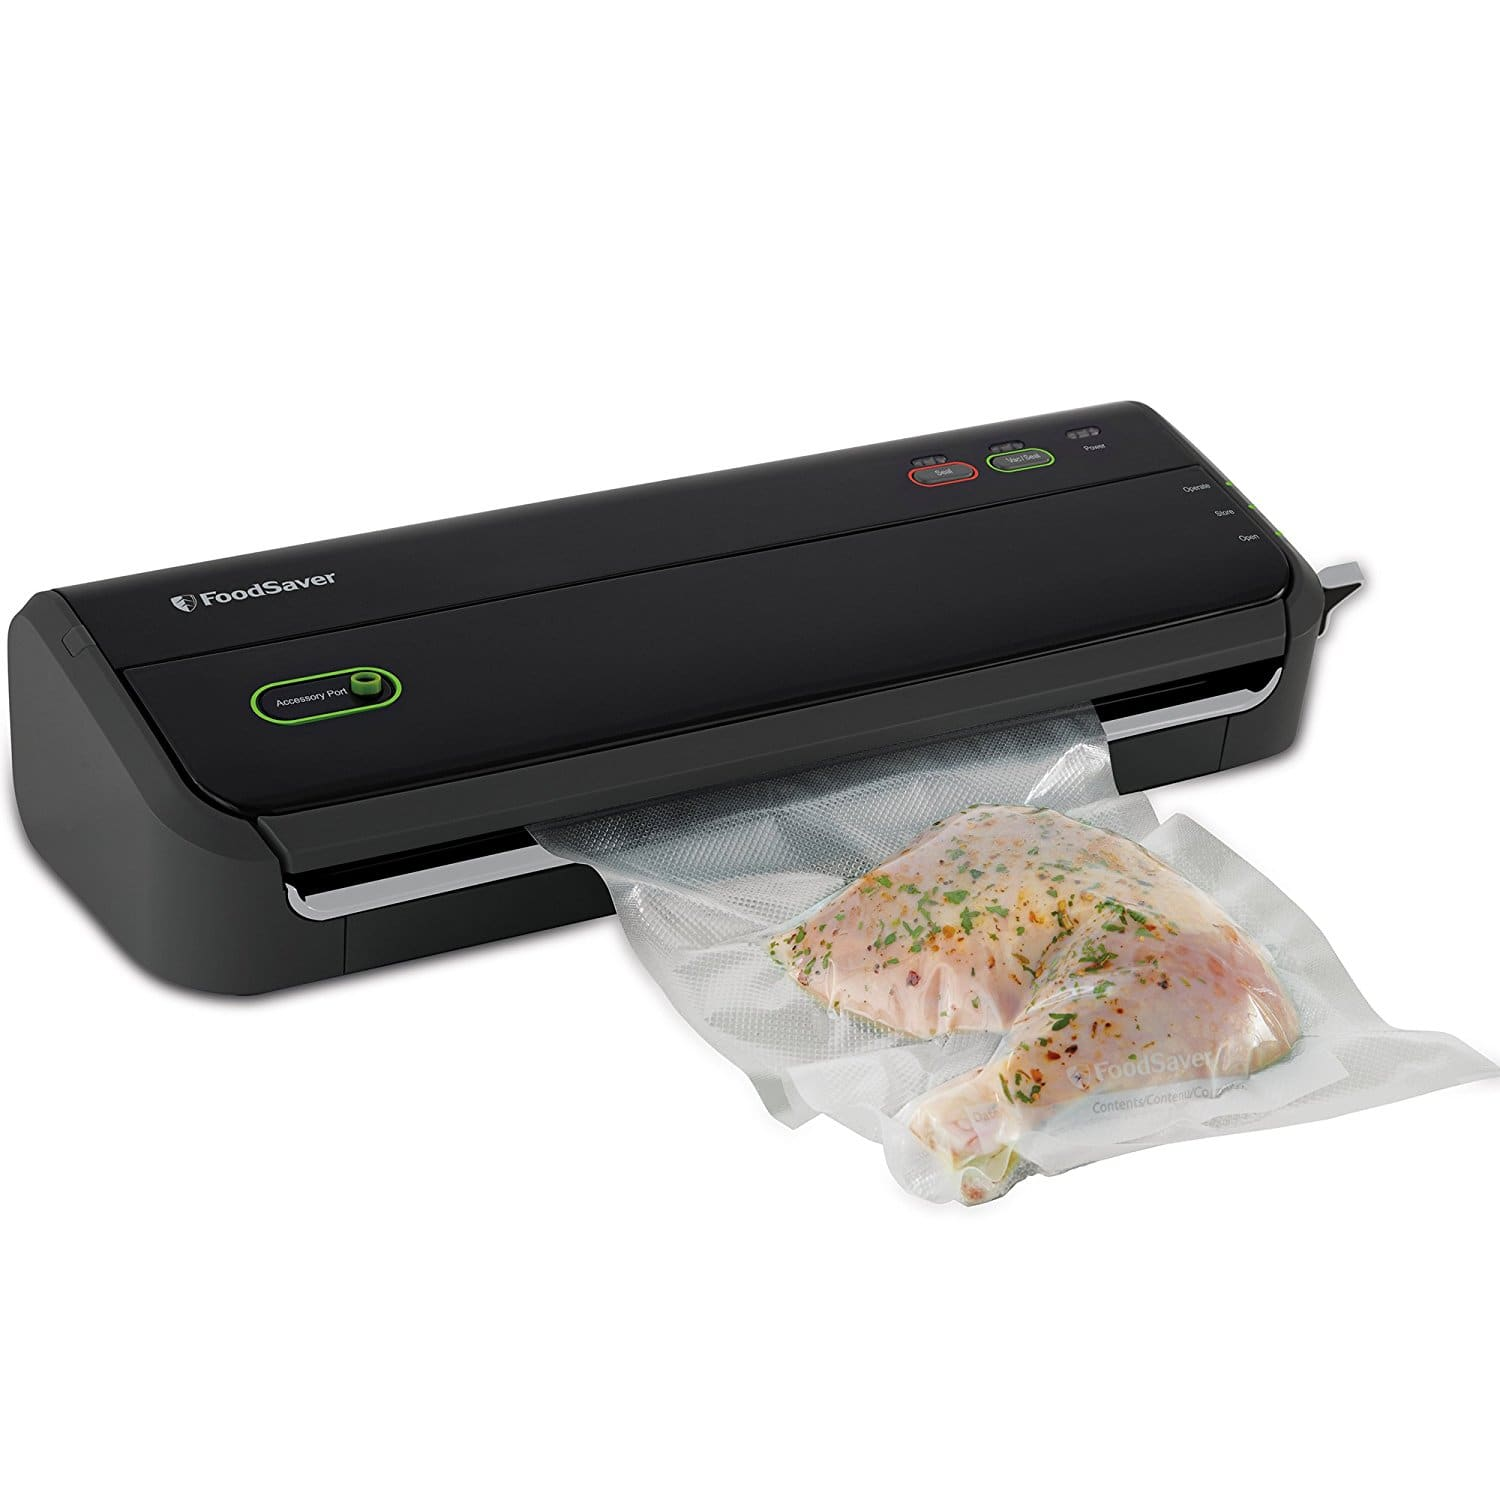 FoodSaver FM2000 Vacuum Sealing System w/ Starter Bag/Roll Set $35.99 + Free Shipping